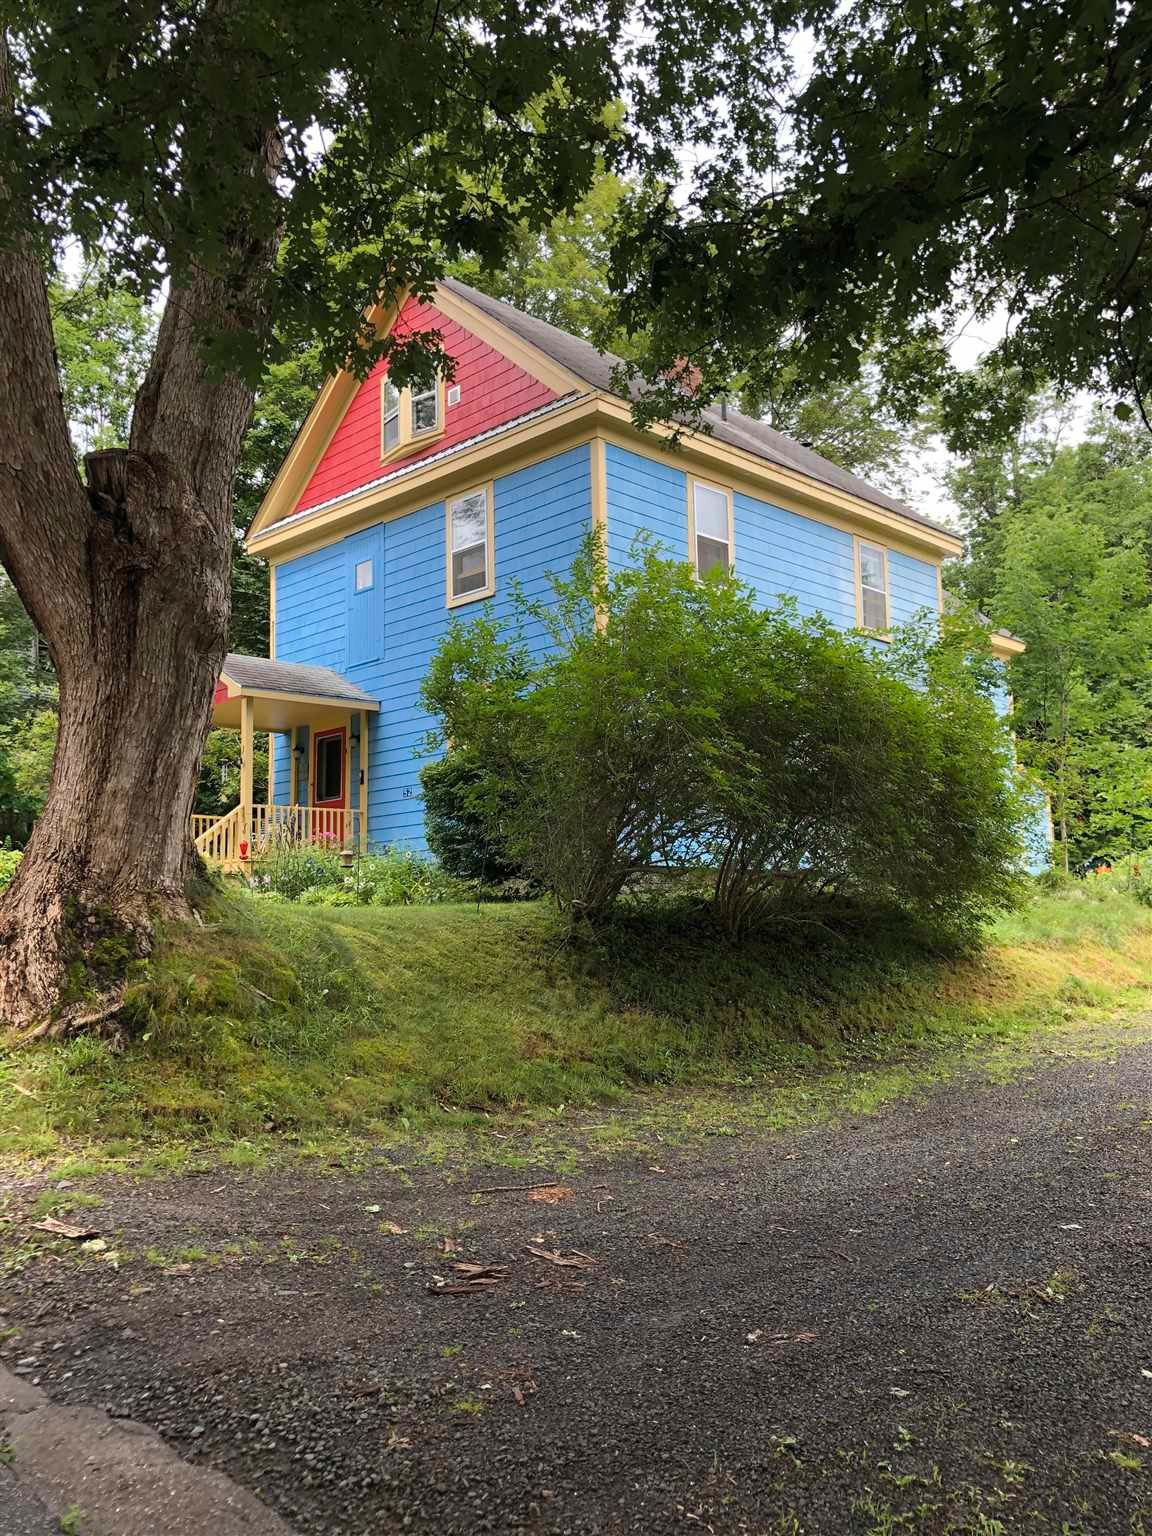 Main Photo: 52 PLEASANT Street in Bear River: 401-Digby County Residential for sale (Annapolis Valley)  : MLS®# 202118600